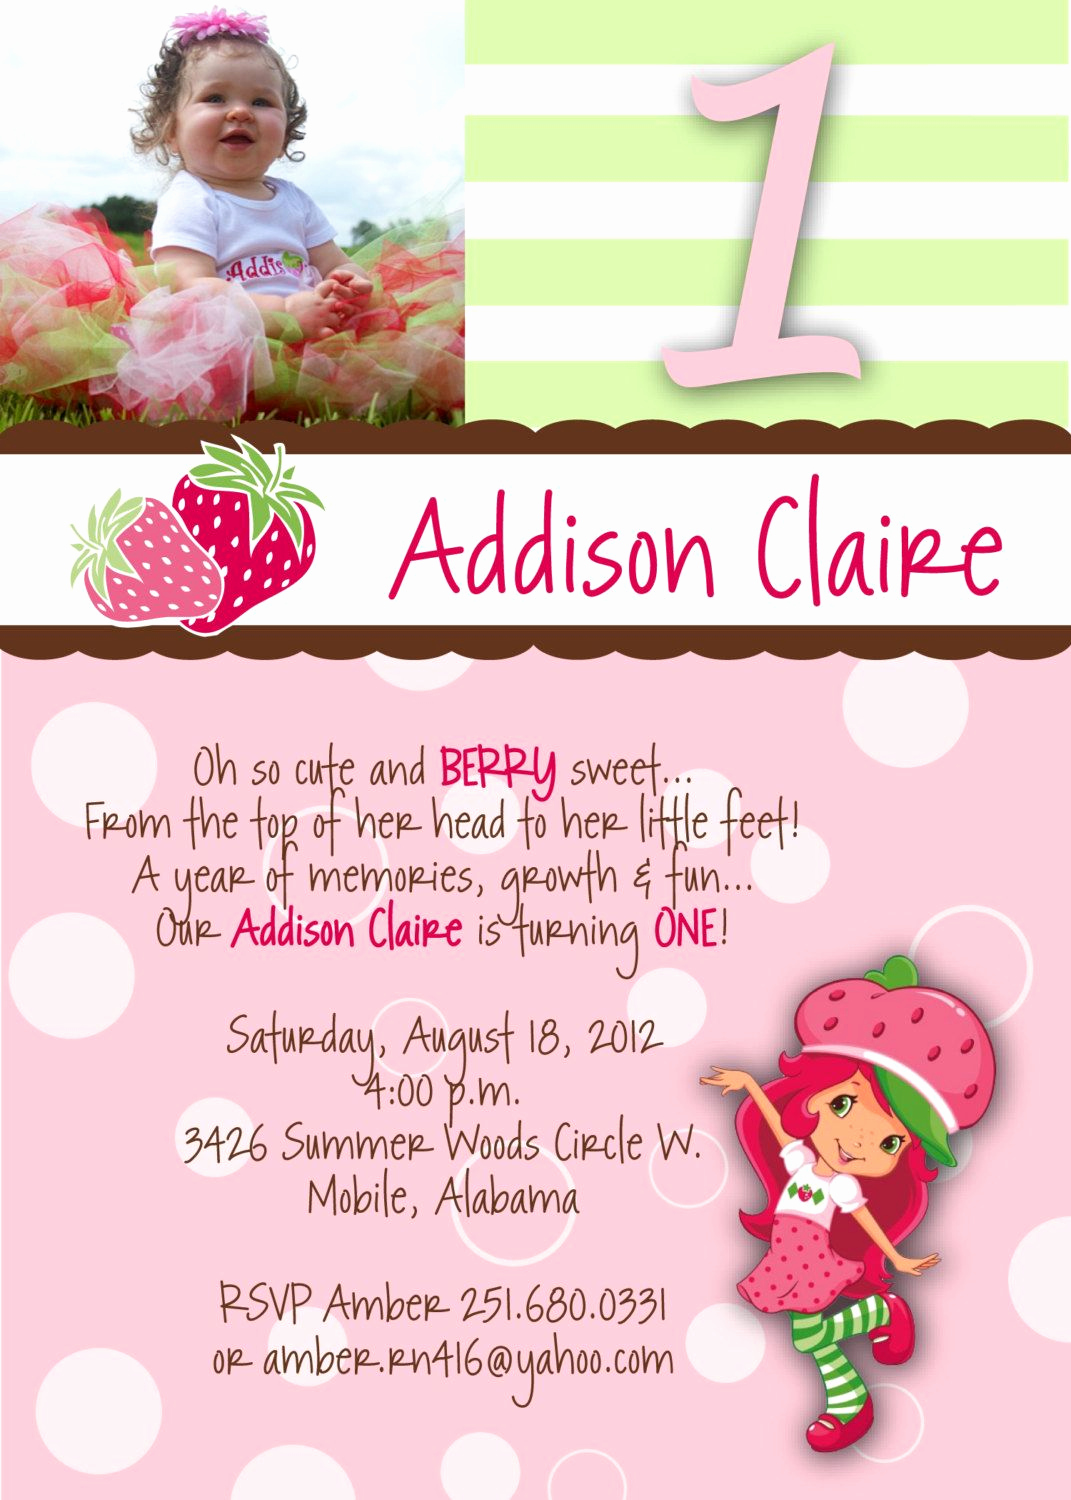 Strawberry Shortcake Invitation Templates Fresh Strawberry Shortcake Invitation by Sendingitinstyle On